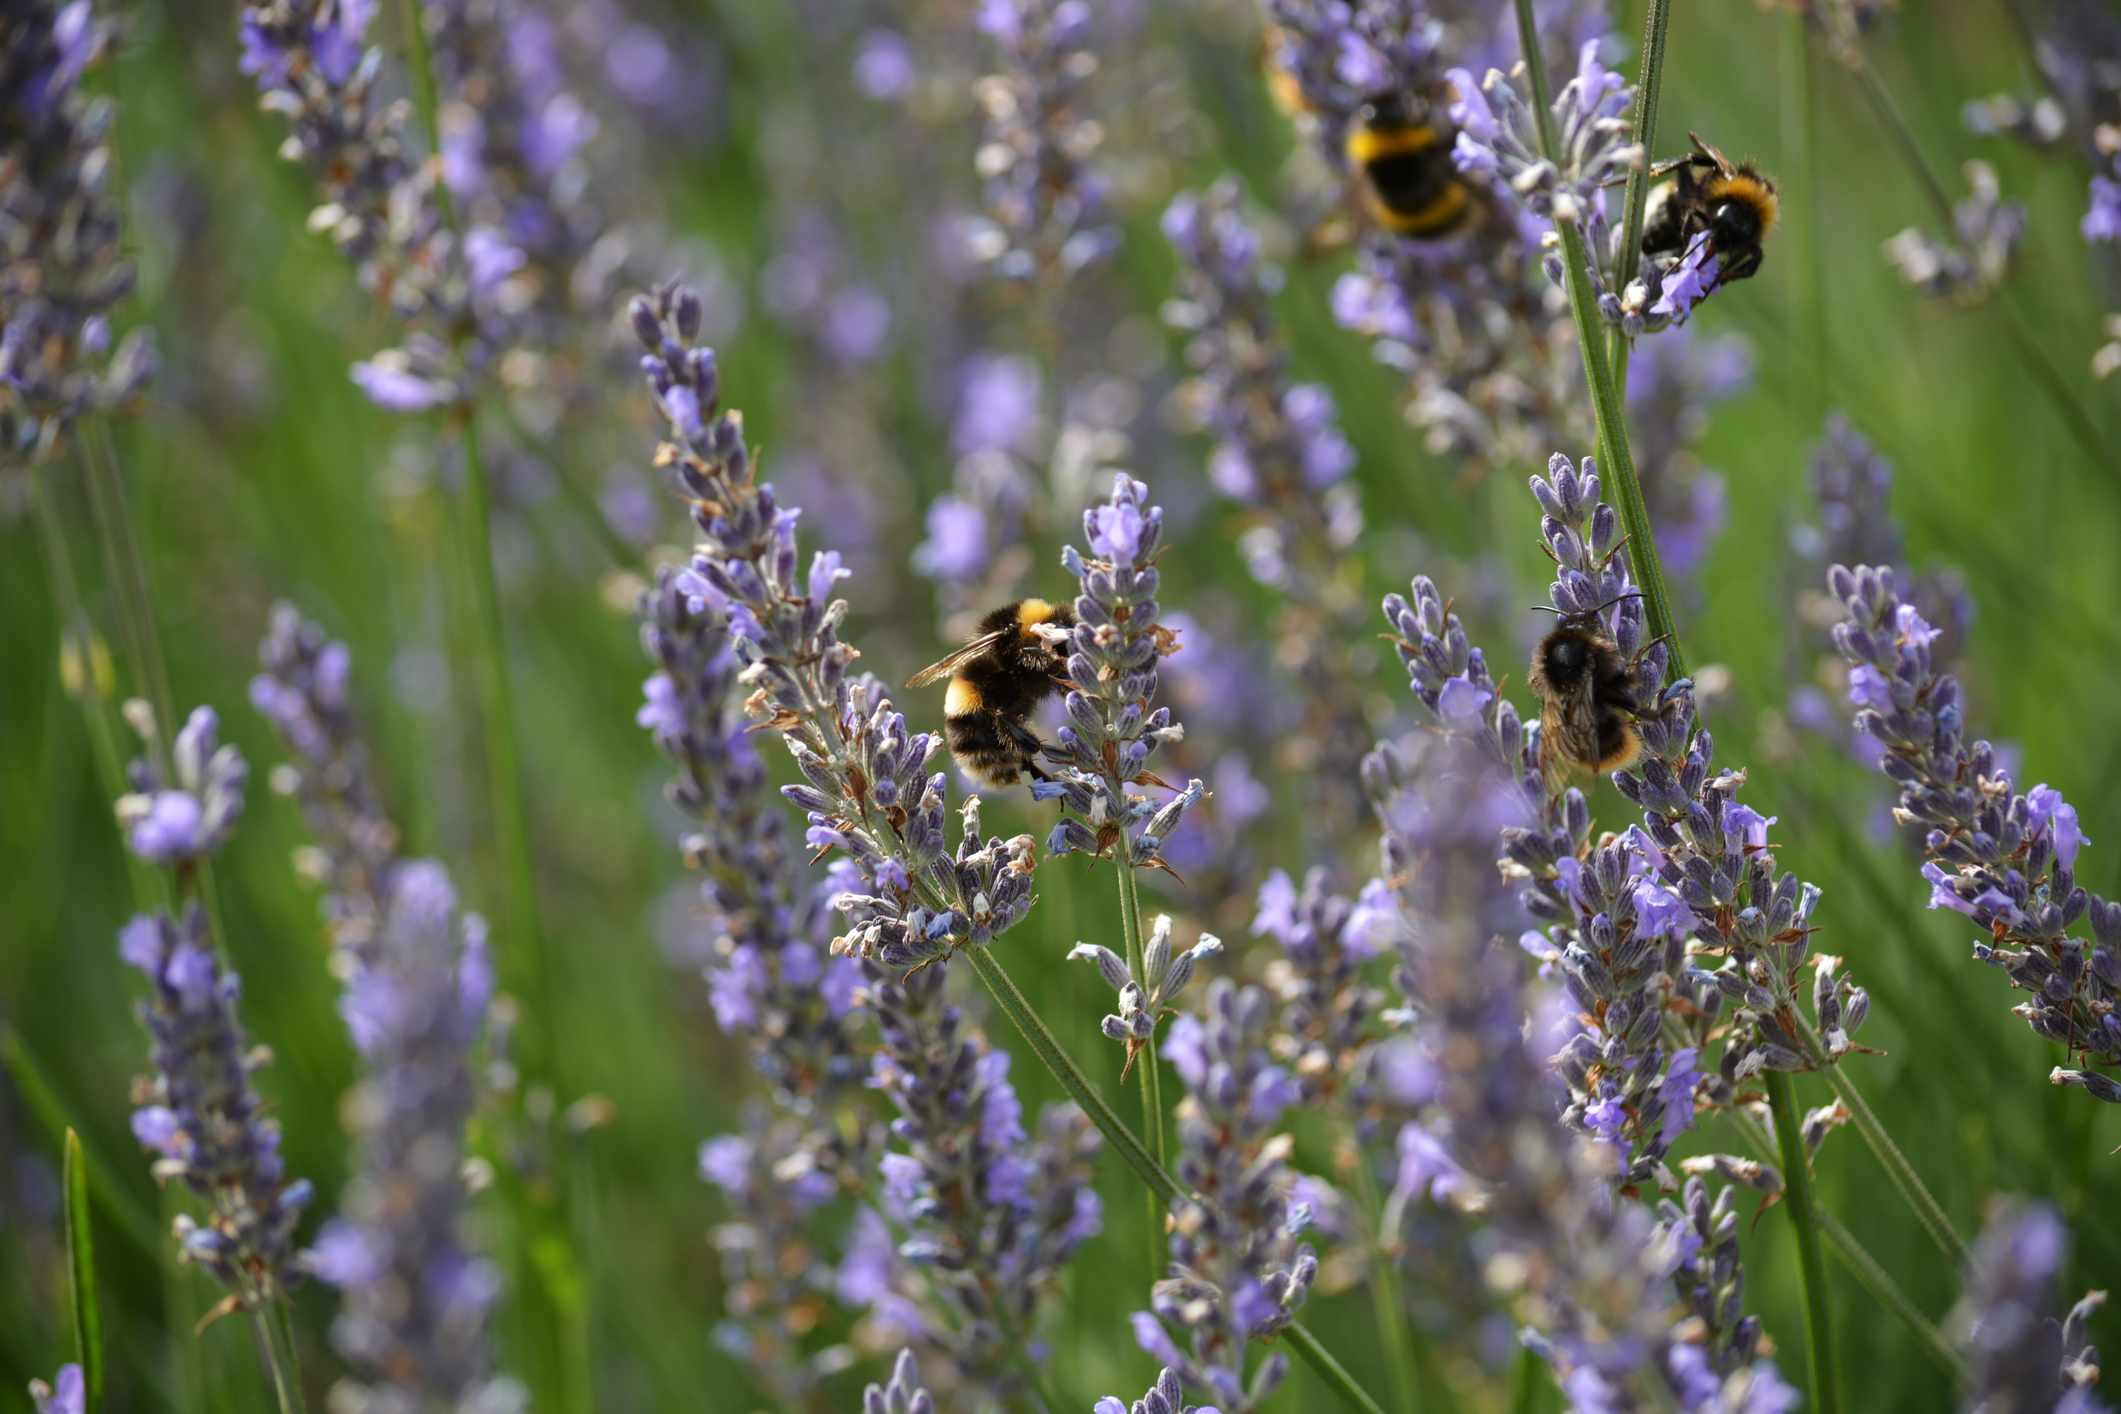 Bumblebees feeding on blooming lavenders